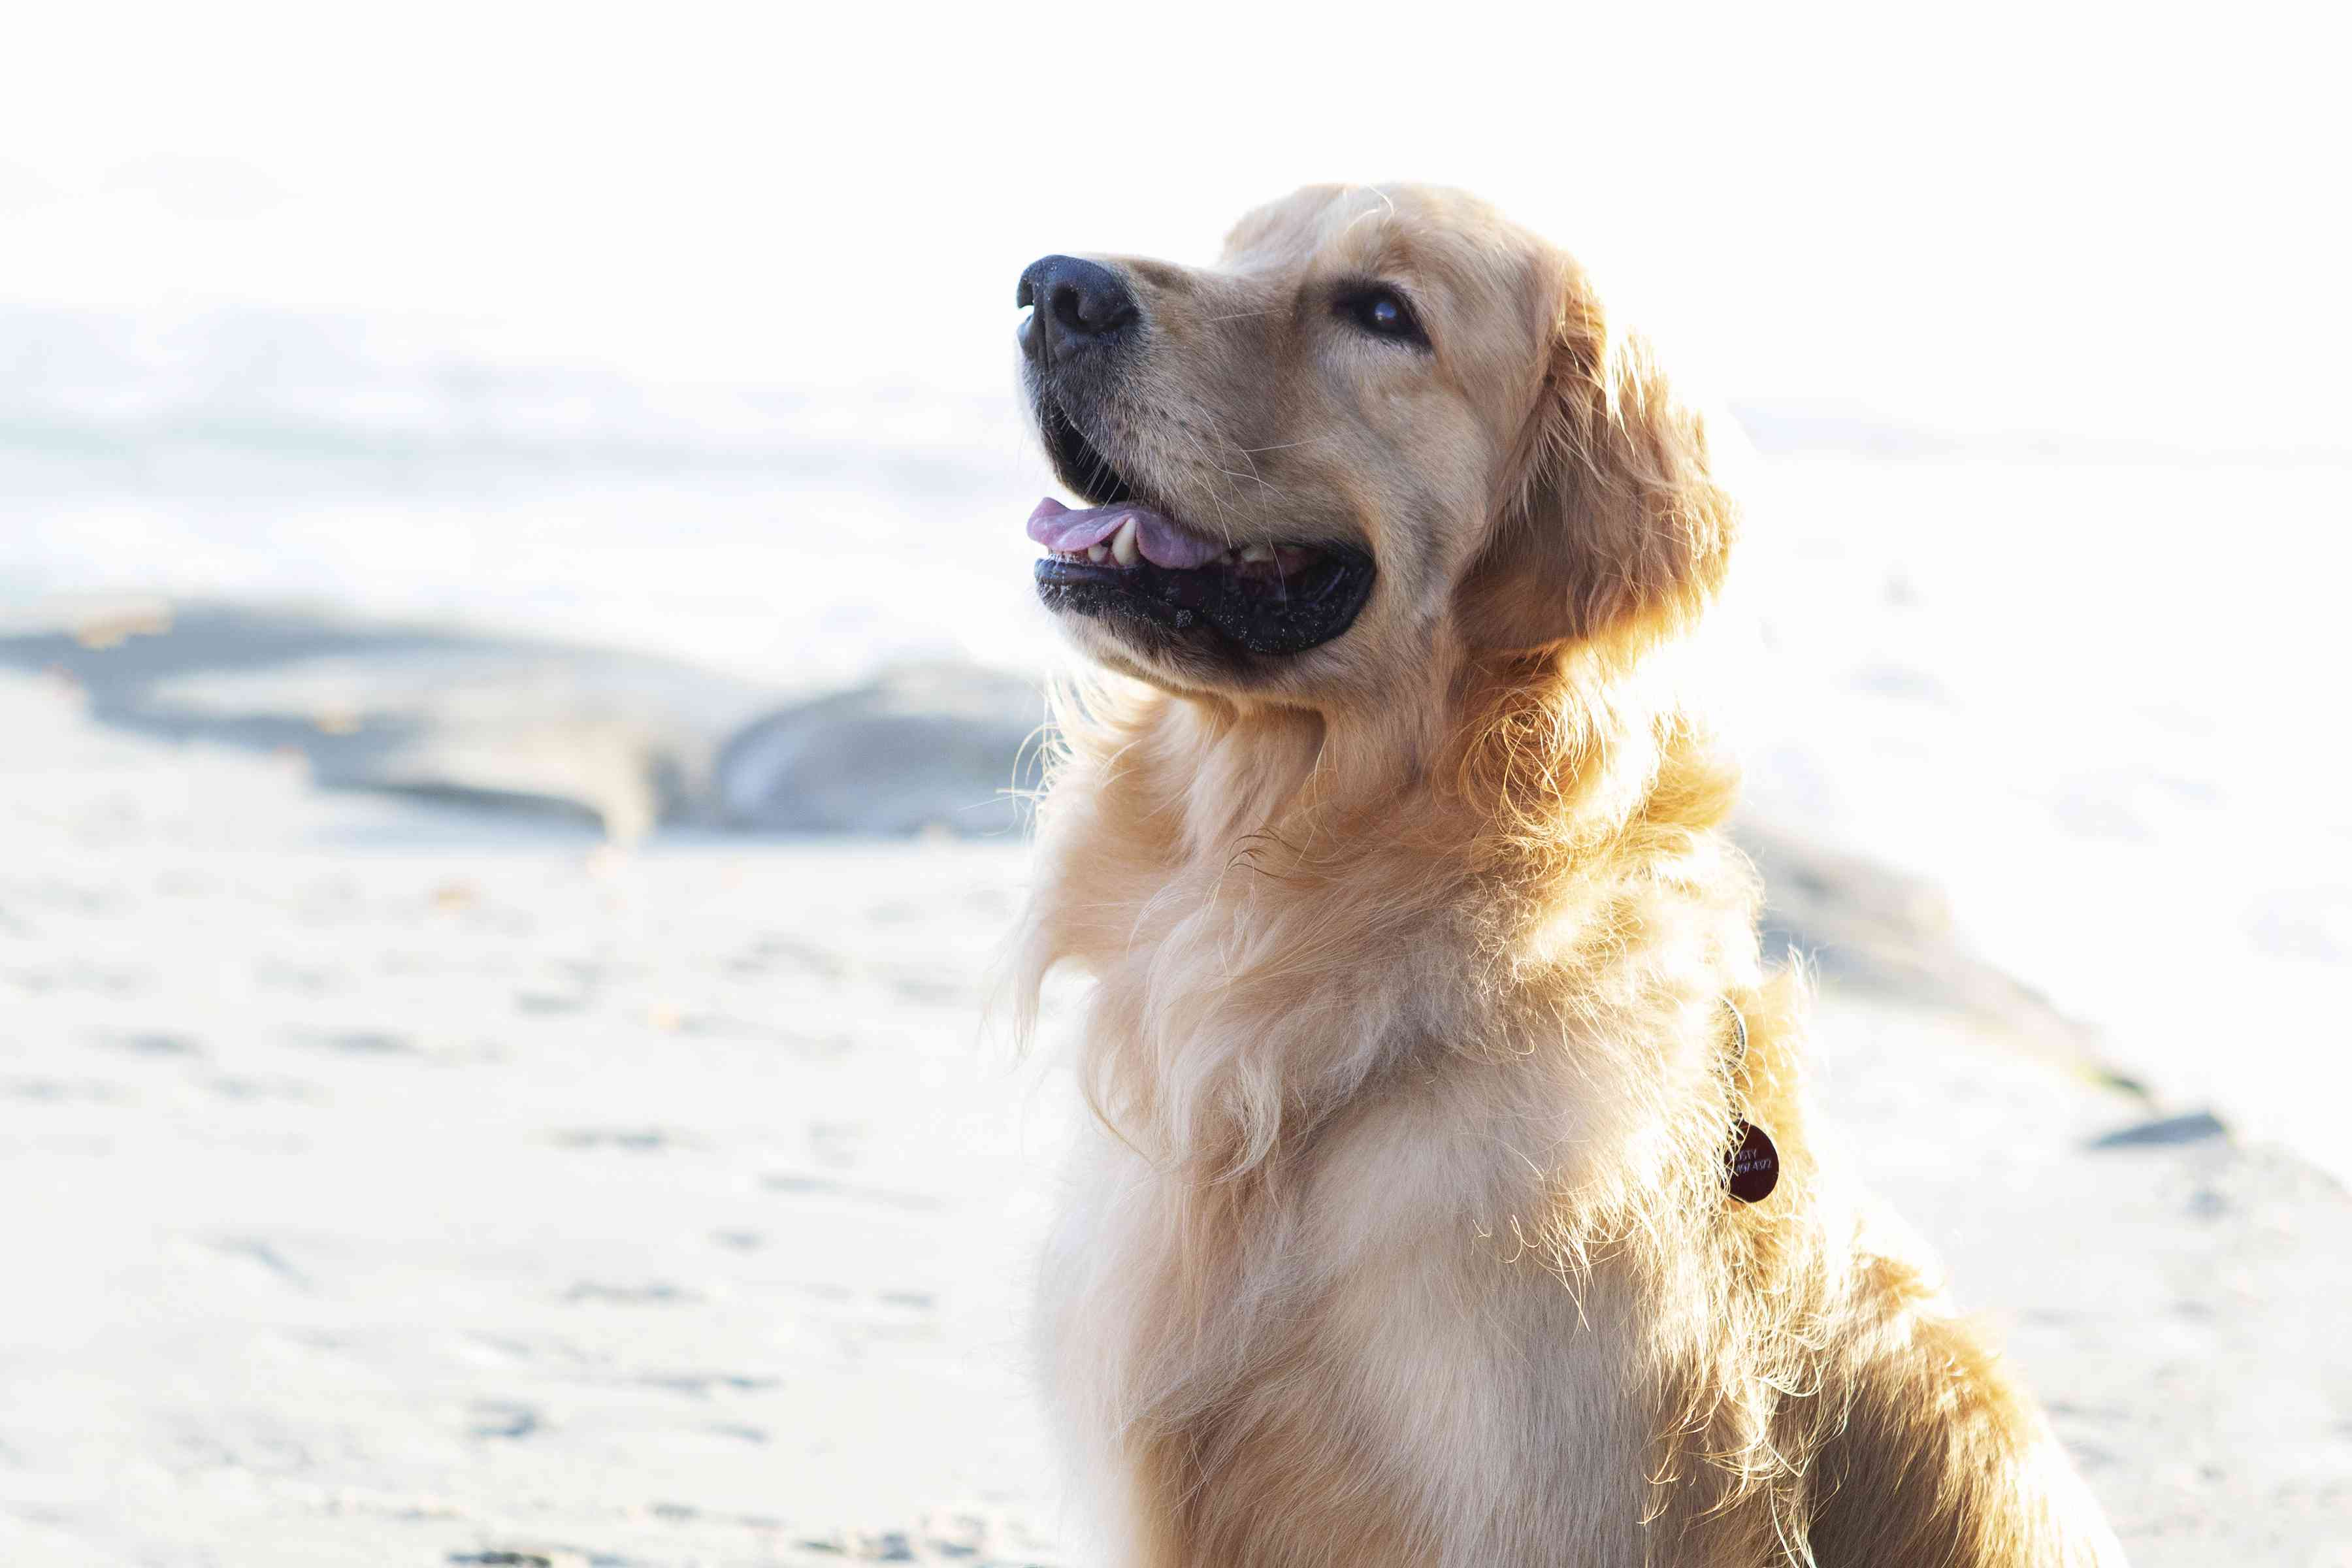 Golden retriever dog sitting in front of water and looking up